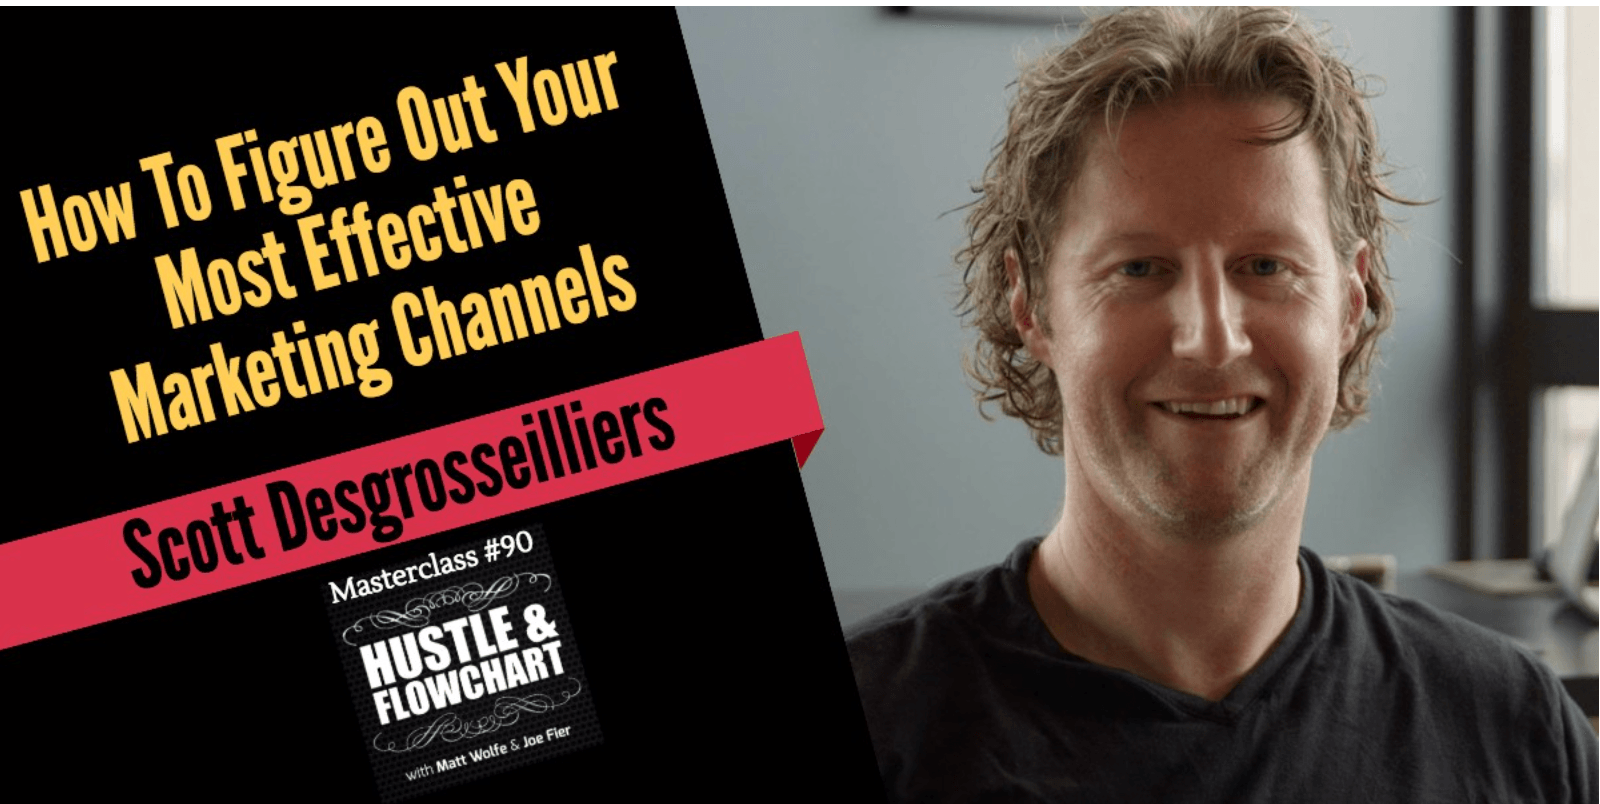 how-to-figure-out-your-most-effective-marketing-channels